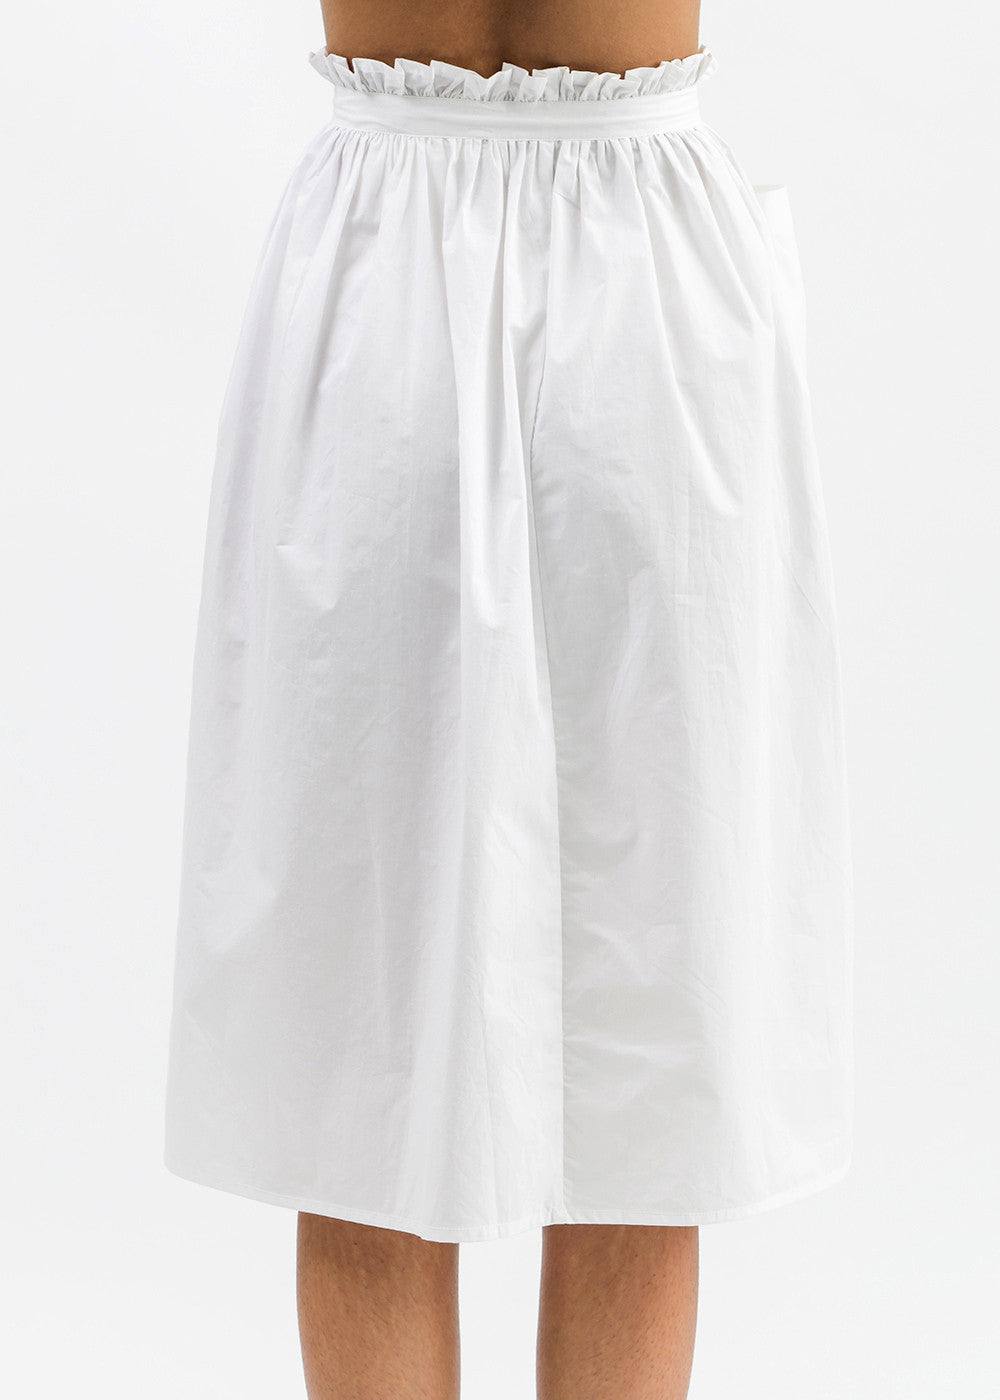 WRAY Town Skirt — Shop sustainable fashion and slow fashion at New Classics Studios